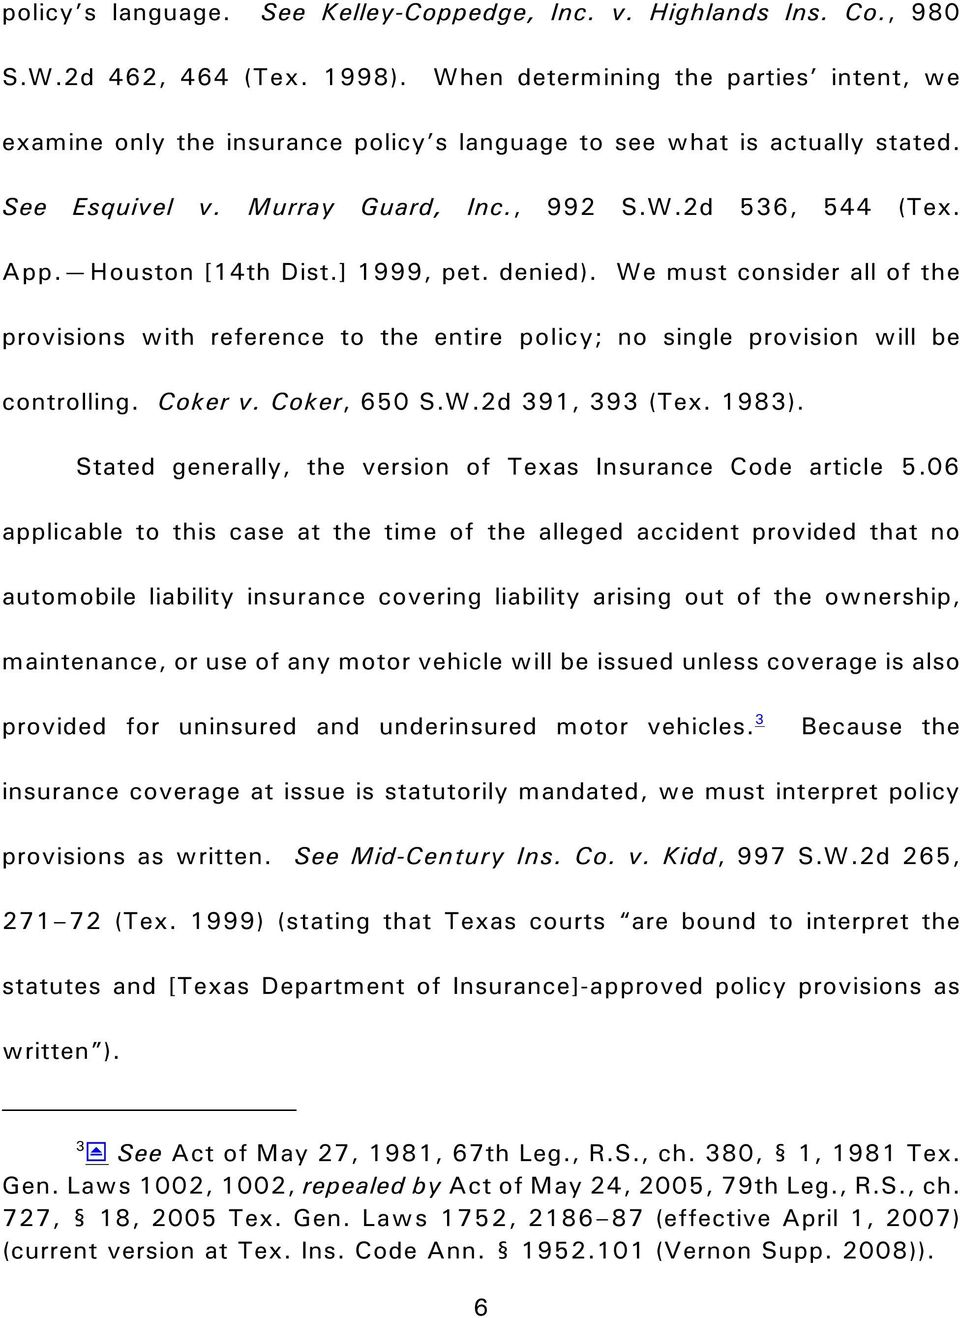 Houston [14th Dist.] 1999, pet. denied). We must consider all of the provisions with reference to the entire policy; no single provision will be controlling. Coker v. Coker, 650 S.W.2d 391, 393 (Tex.